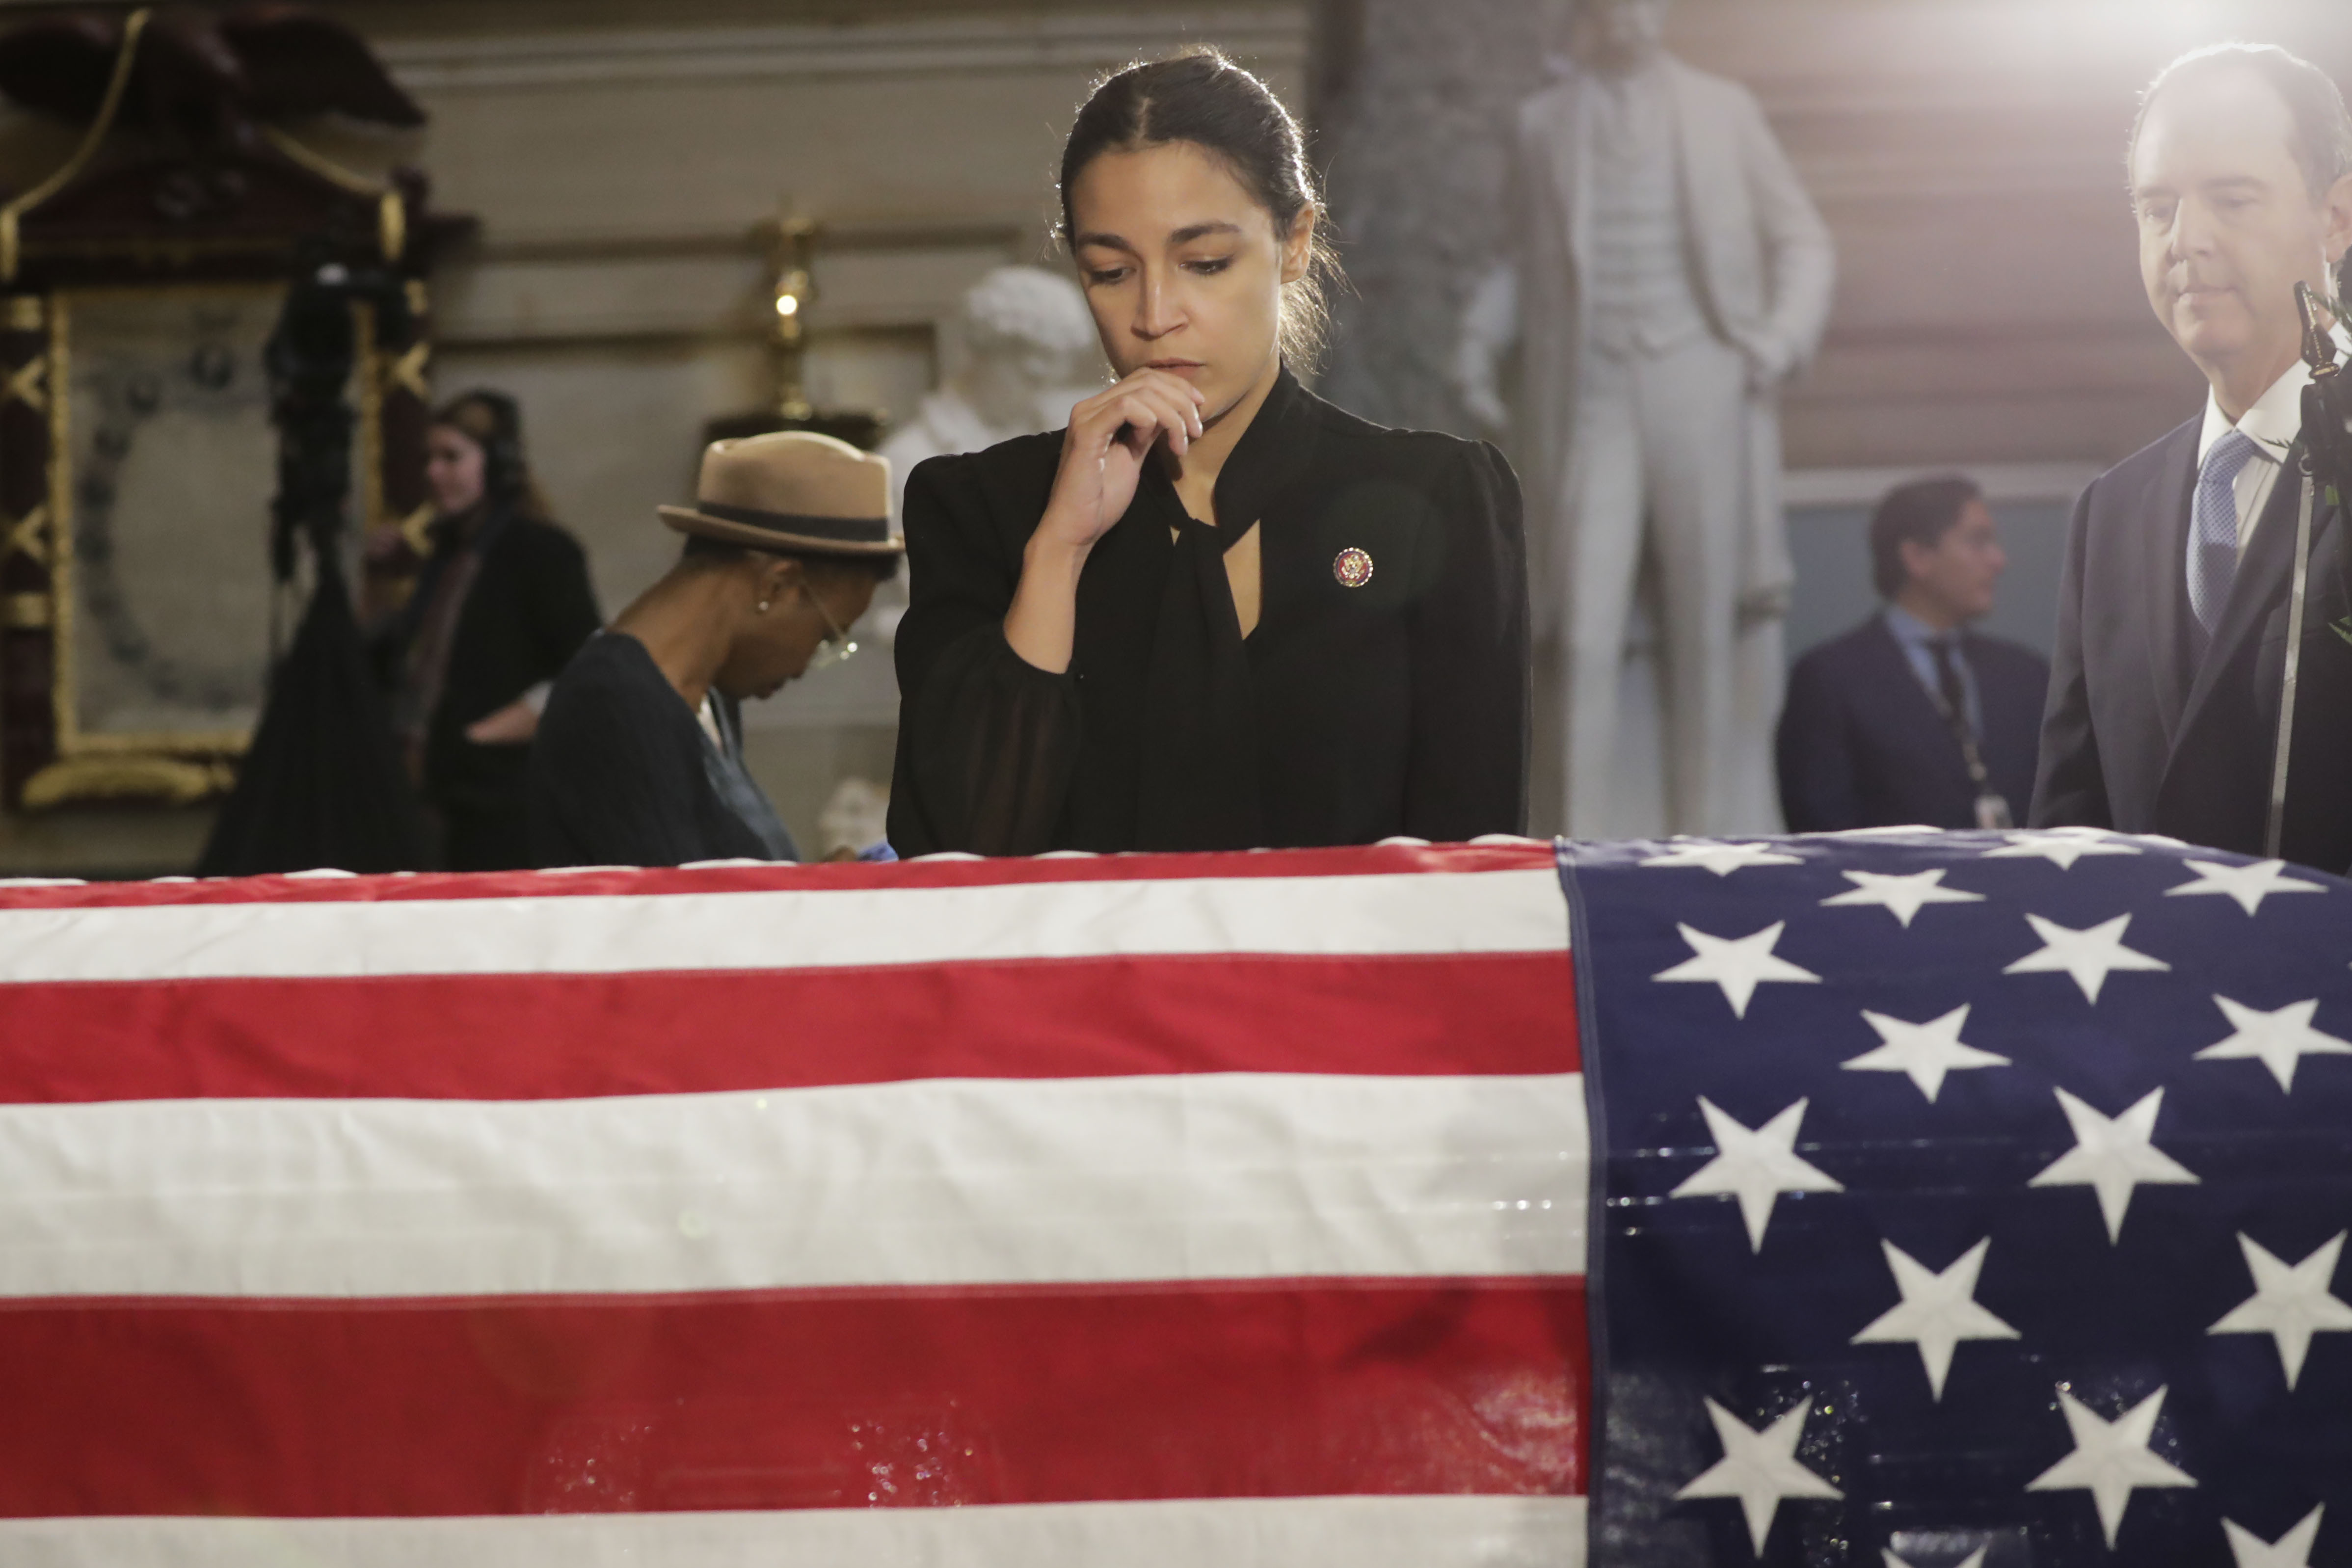 "WASHINGTON, DC - OCTOBER 24: U.S. Rep. Alexandria Ocasio-Cortez (D-NY) stops to pay her respects over the flag-draped casket of U.S. Rep. Elijah Cummings (D-MD) in National Statuary Hall at the U.S. Capitol during a memorial service October 24, 2019 in Washington, DC. Rep. Cummings passed away on October 17, 2019 at the age of 68 from ""complications concerning longstanding health challenges."" (Photo by Pablo Martinez Monsivais-Pool/Getty Images)"